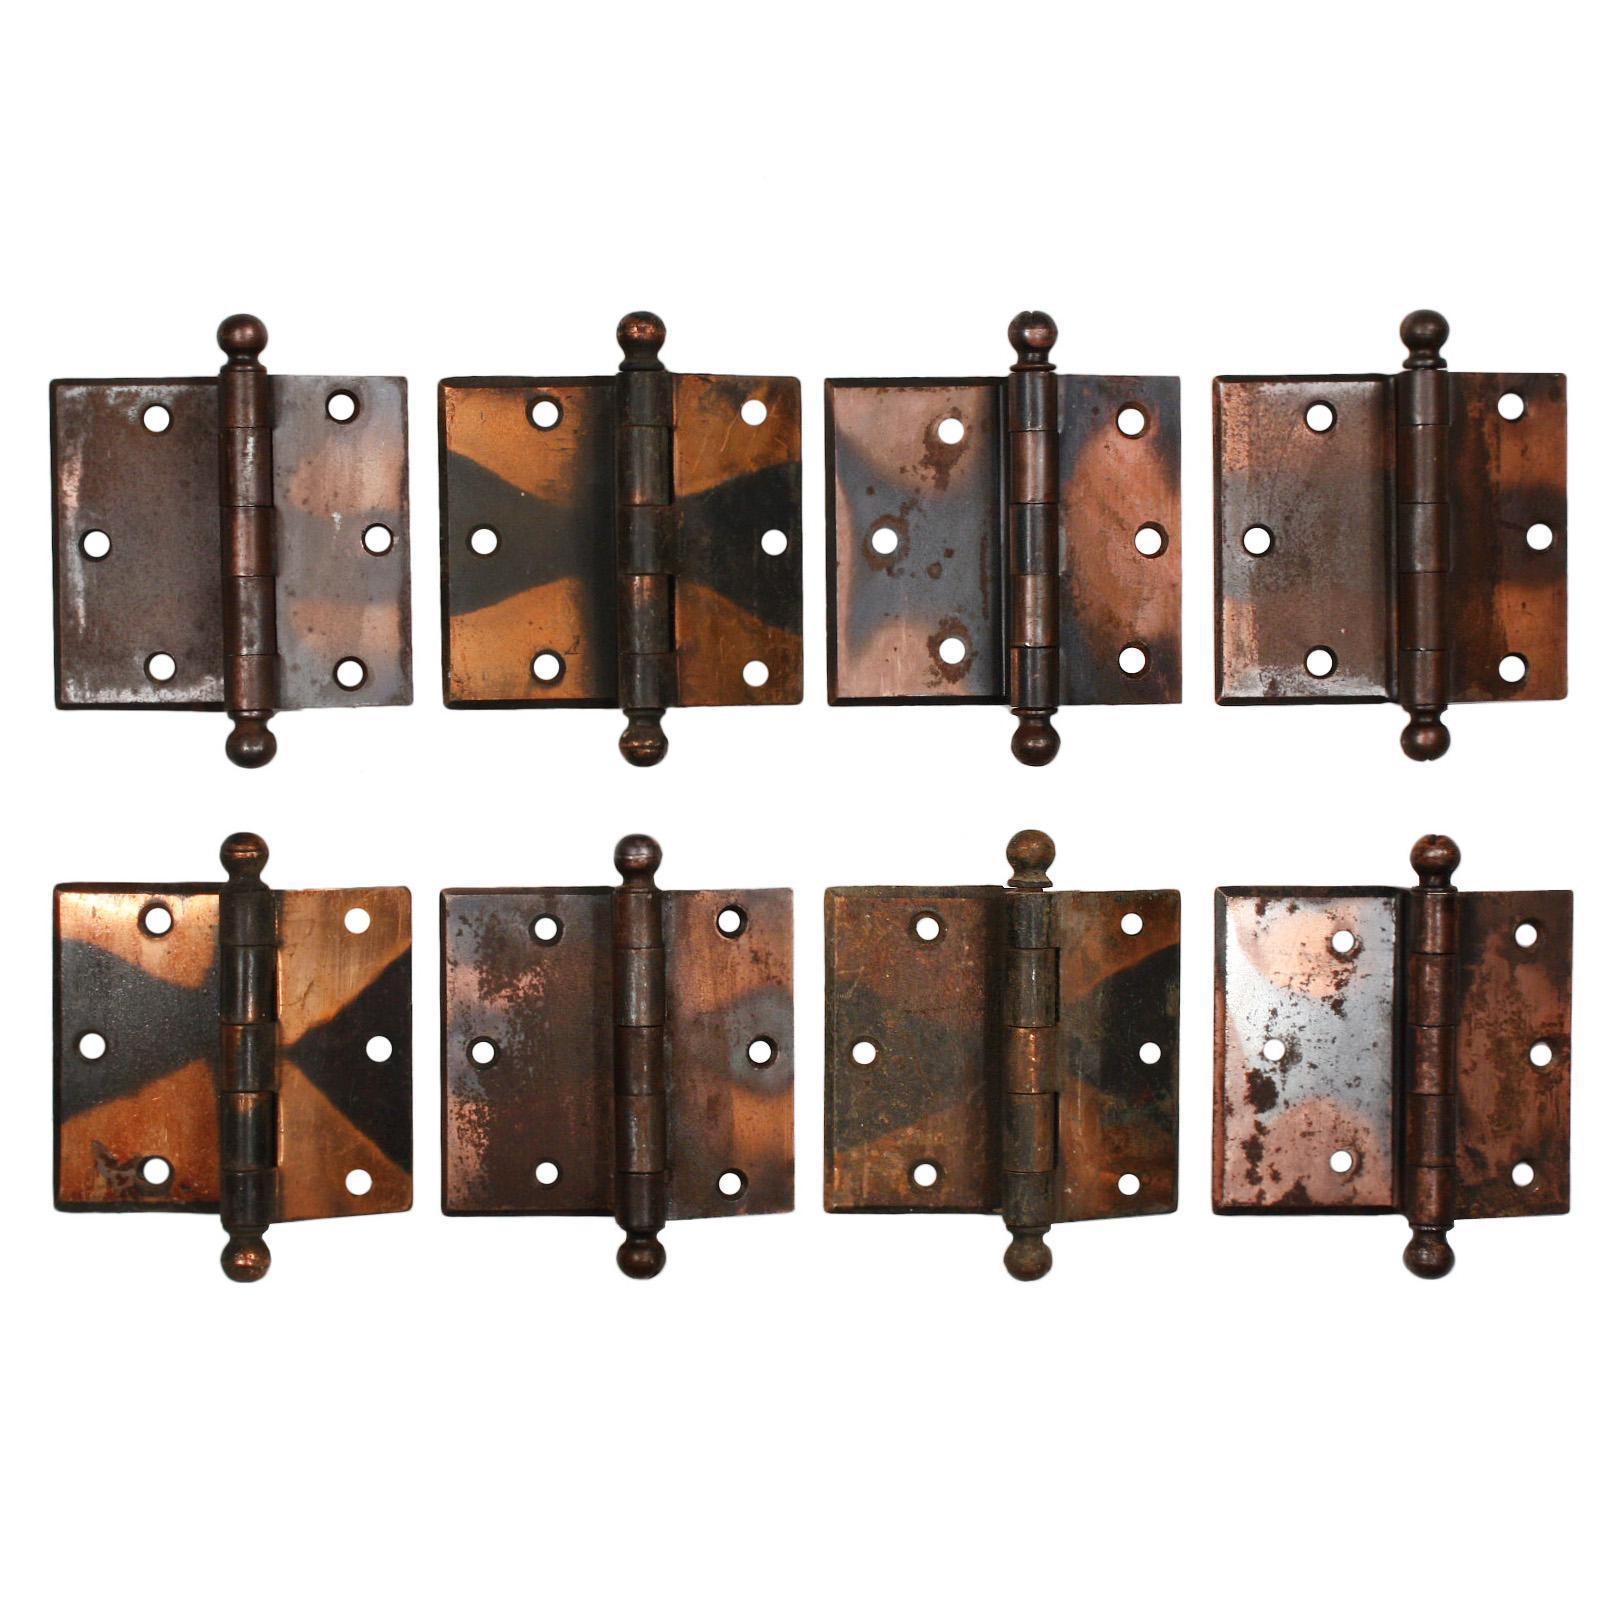 "Antique 3-1/2"" Offset Hinges, Japanned Finish"